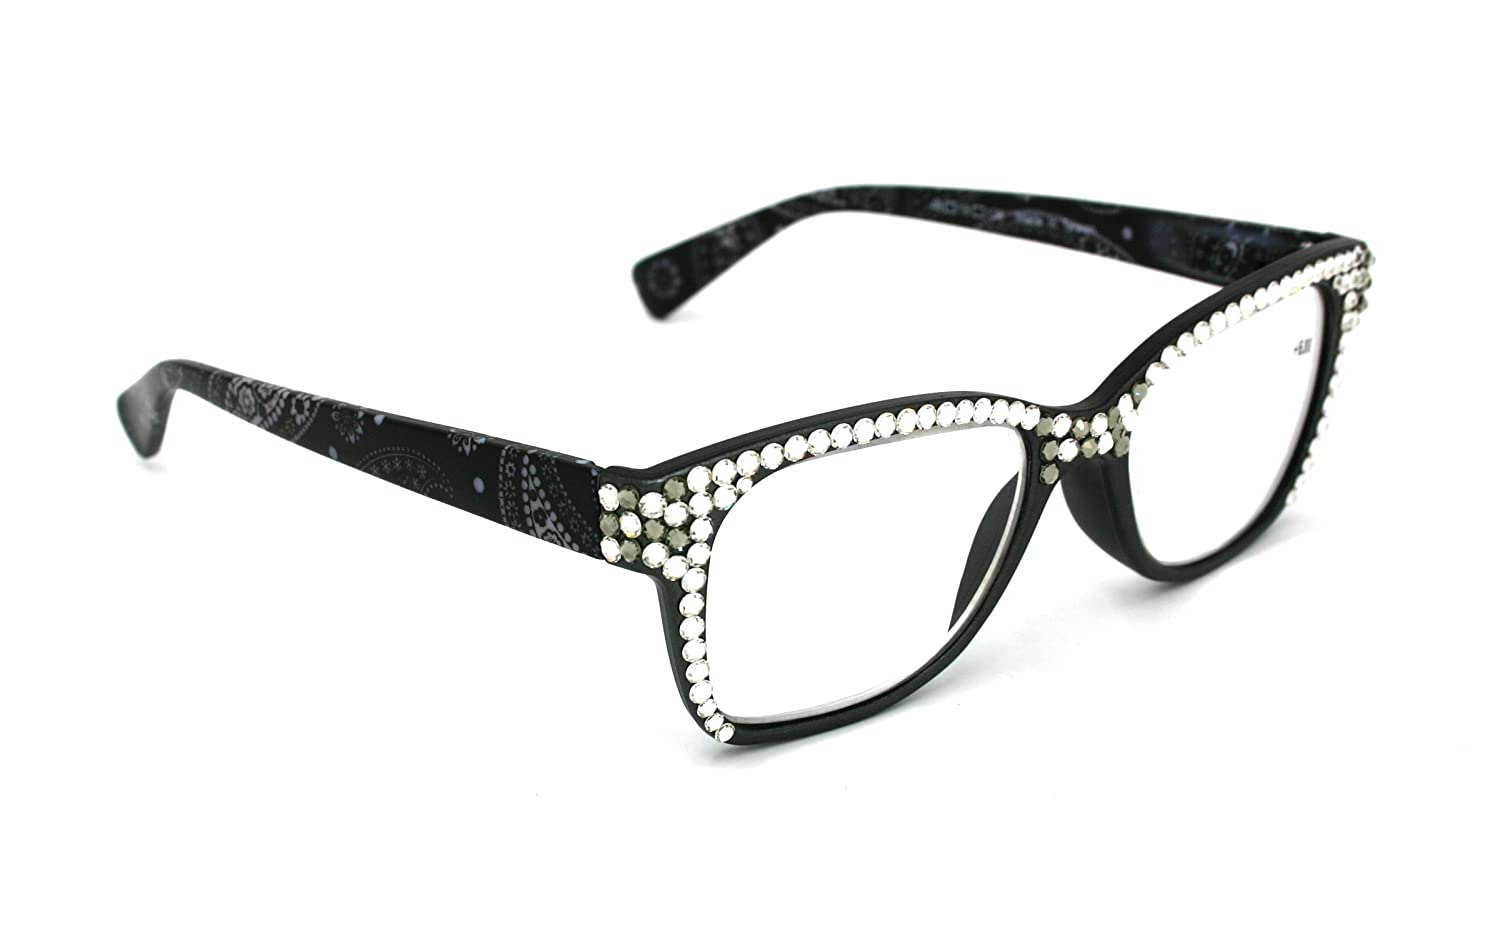 Bling Reading Glasses W/Swarovski Crystals